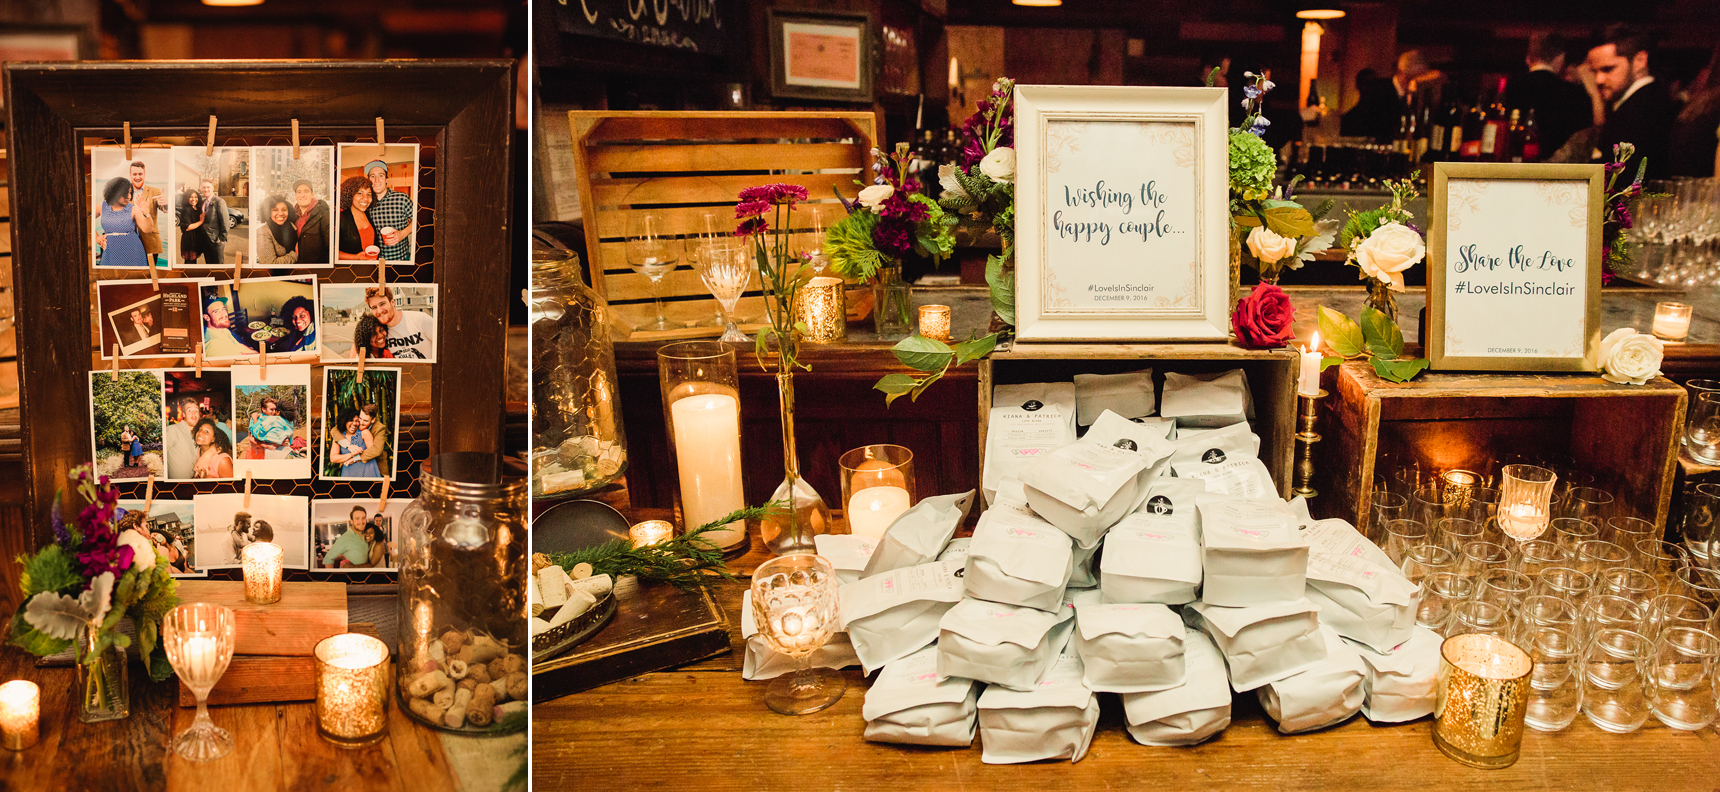 KP_BrooklynWinery_Wedding_NewYork_Photographer067.jpg